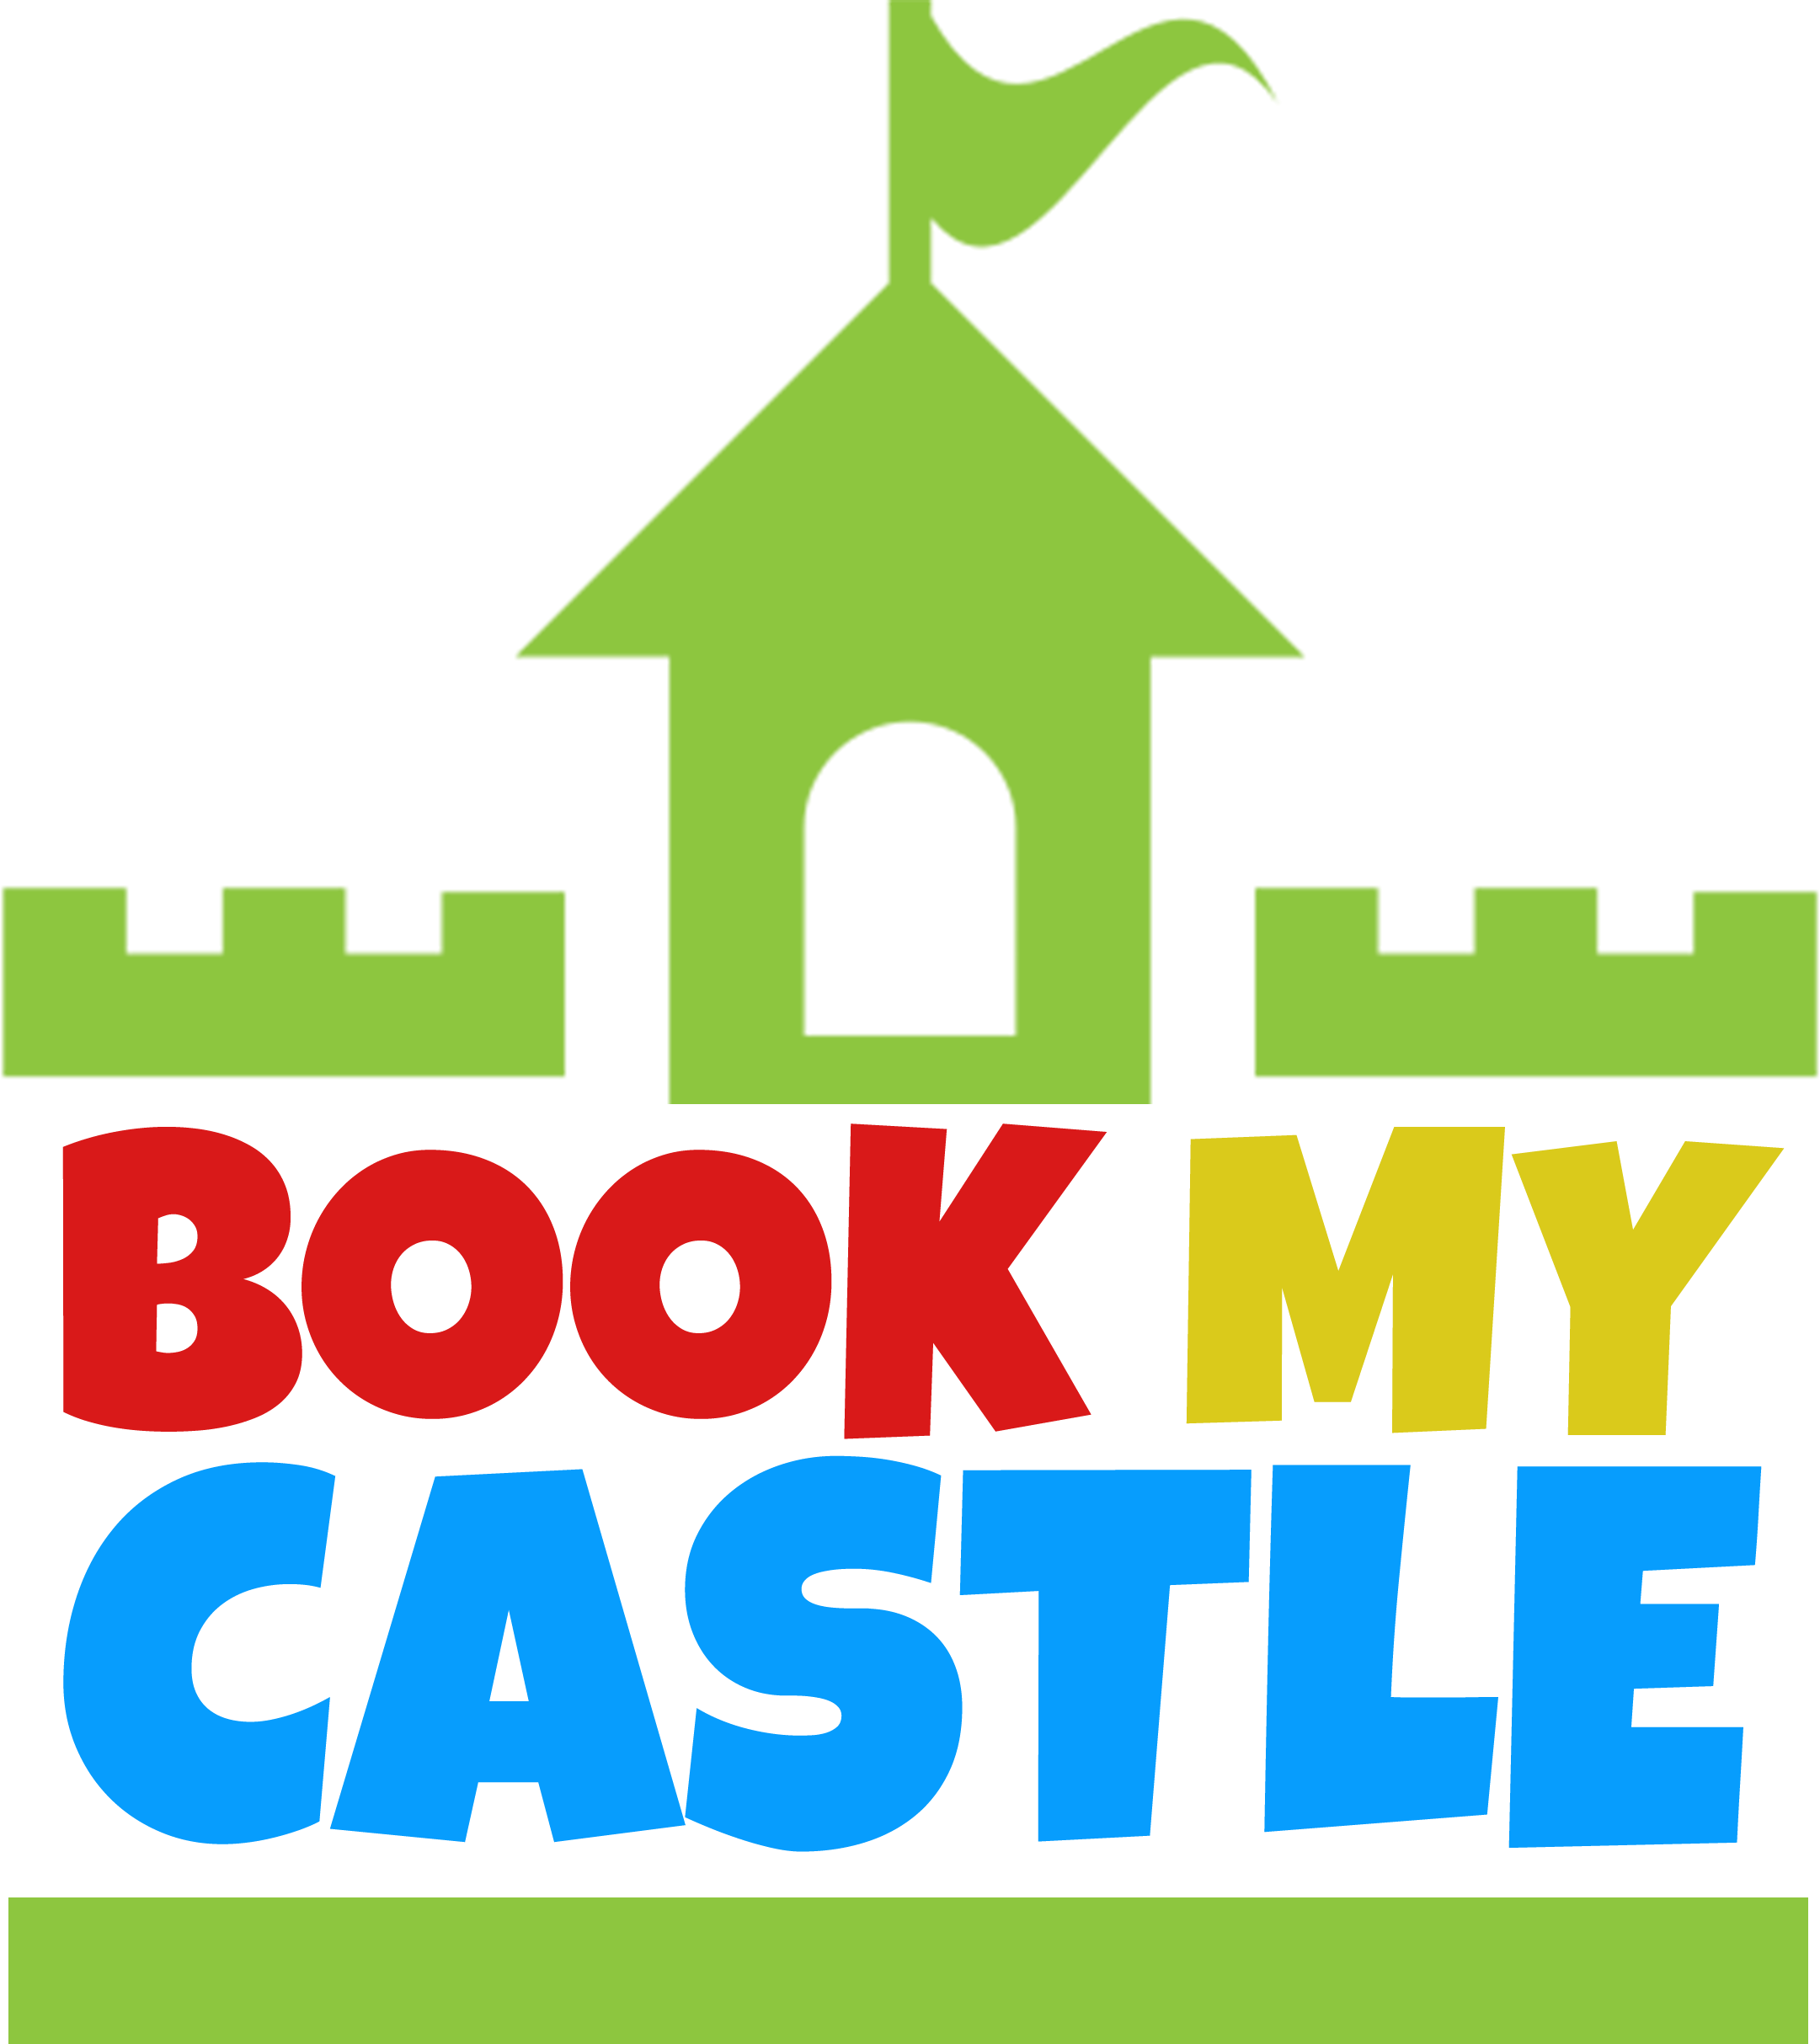 Book My Castle